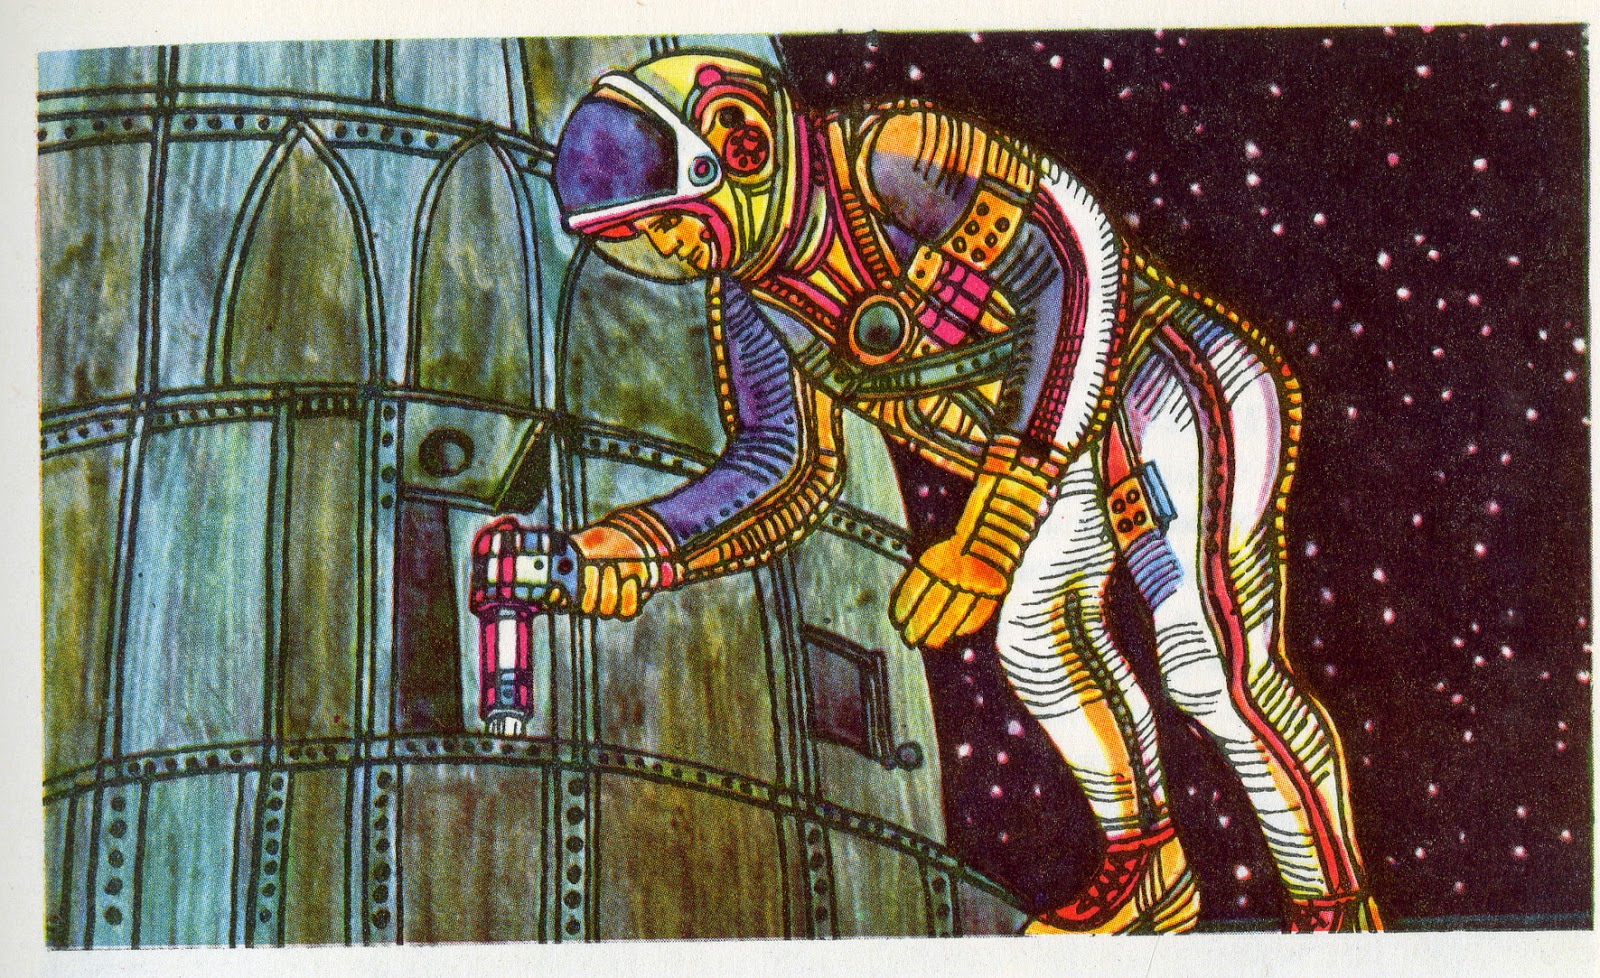 Dreams of Space - Books and Ephemera: On the Spacecraft ...